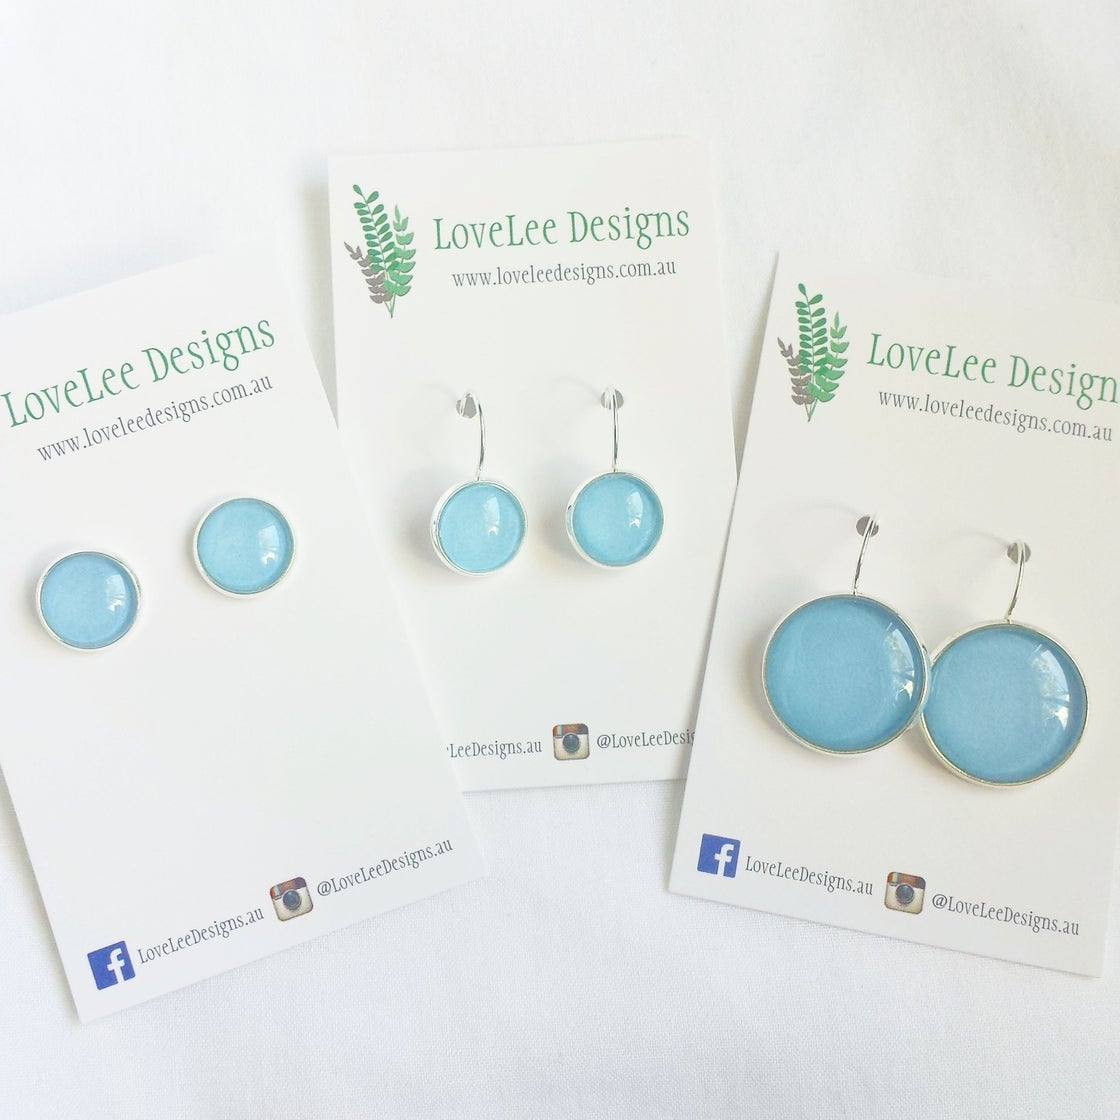 Image of Earrings - Sky blue